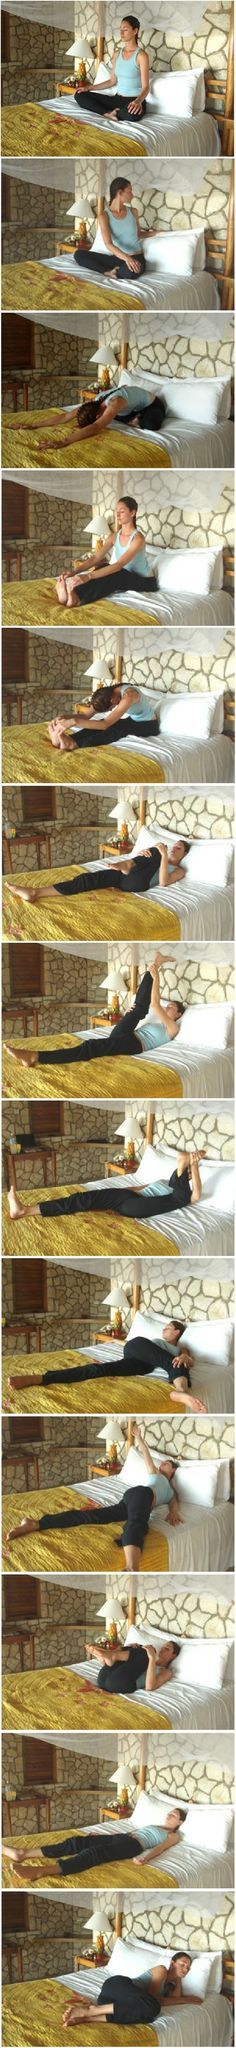 Bed time (or anytime) yoga stretches. Releases tension in lower back, elongating the lower spine.  Tried this tonight. I don't remember the last time I was this relaxed. It feels so good to release tension after a long day.